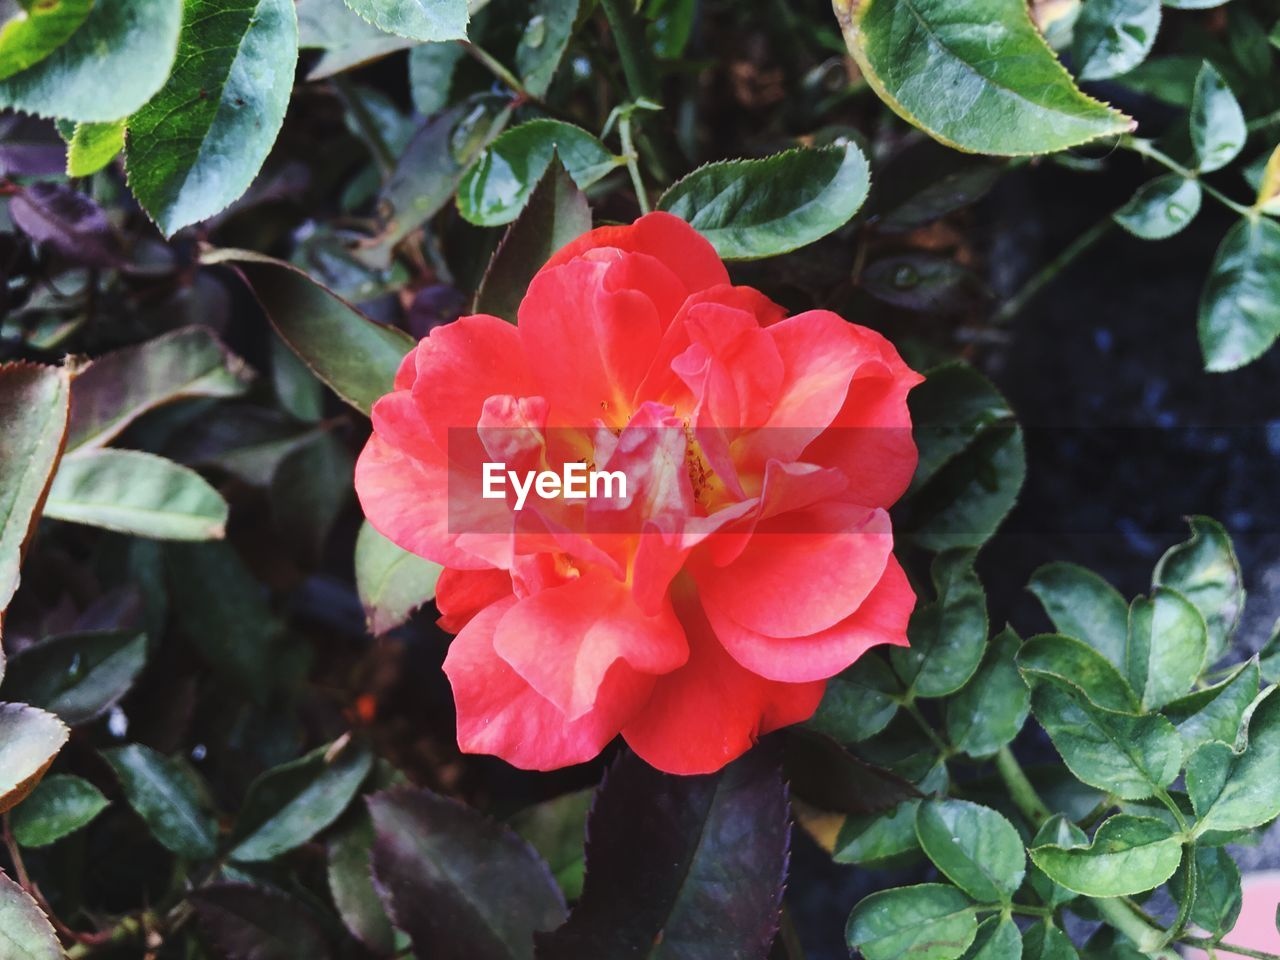 flower, petal, nature, beauty in nature, flower head, growth, leaf, plant, fragility, outdoors, day, high angle view, no people, pink color, green color, blooming, red, wild rose, freshness, close-up